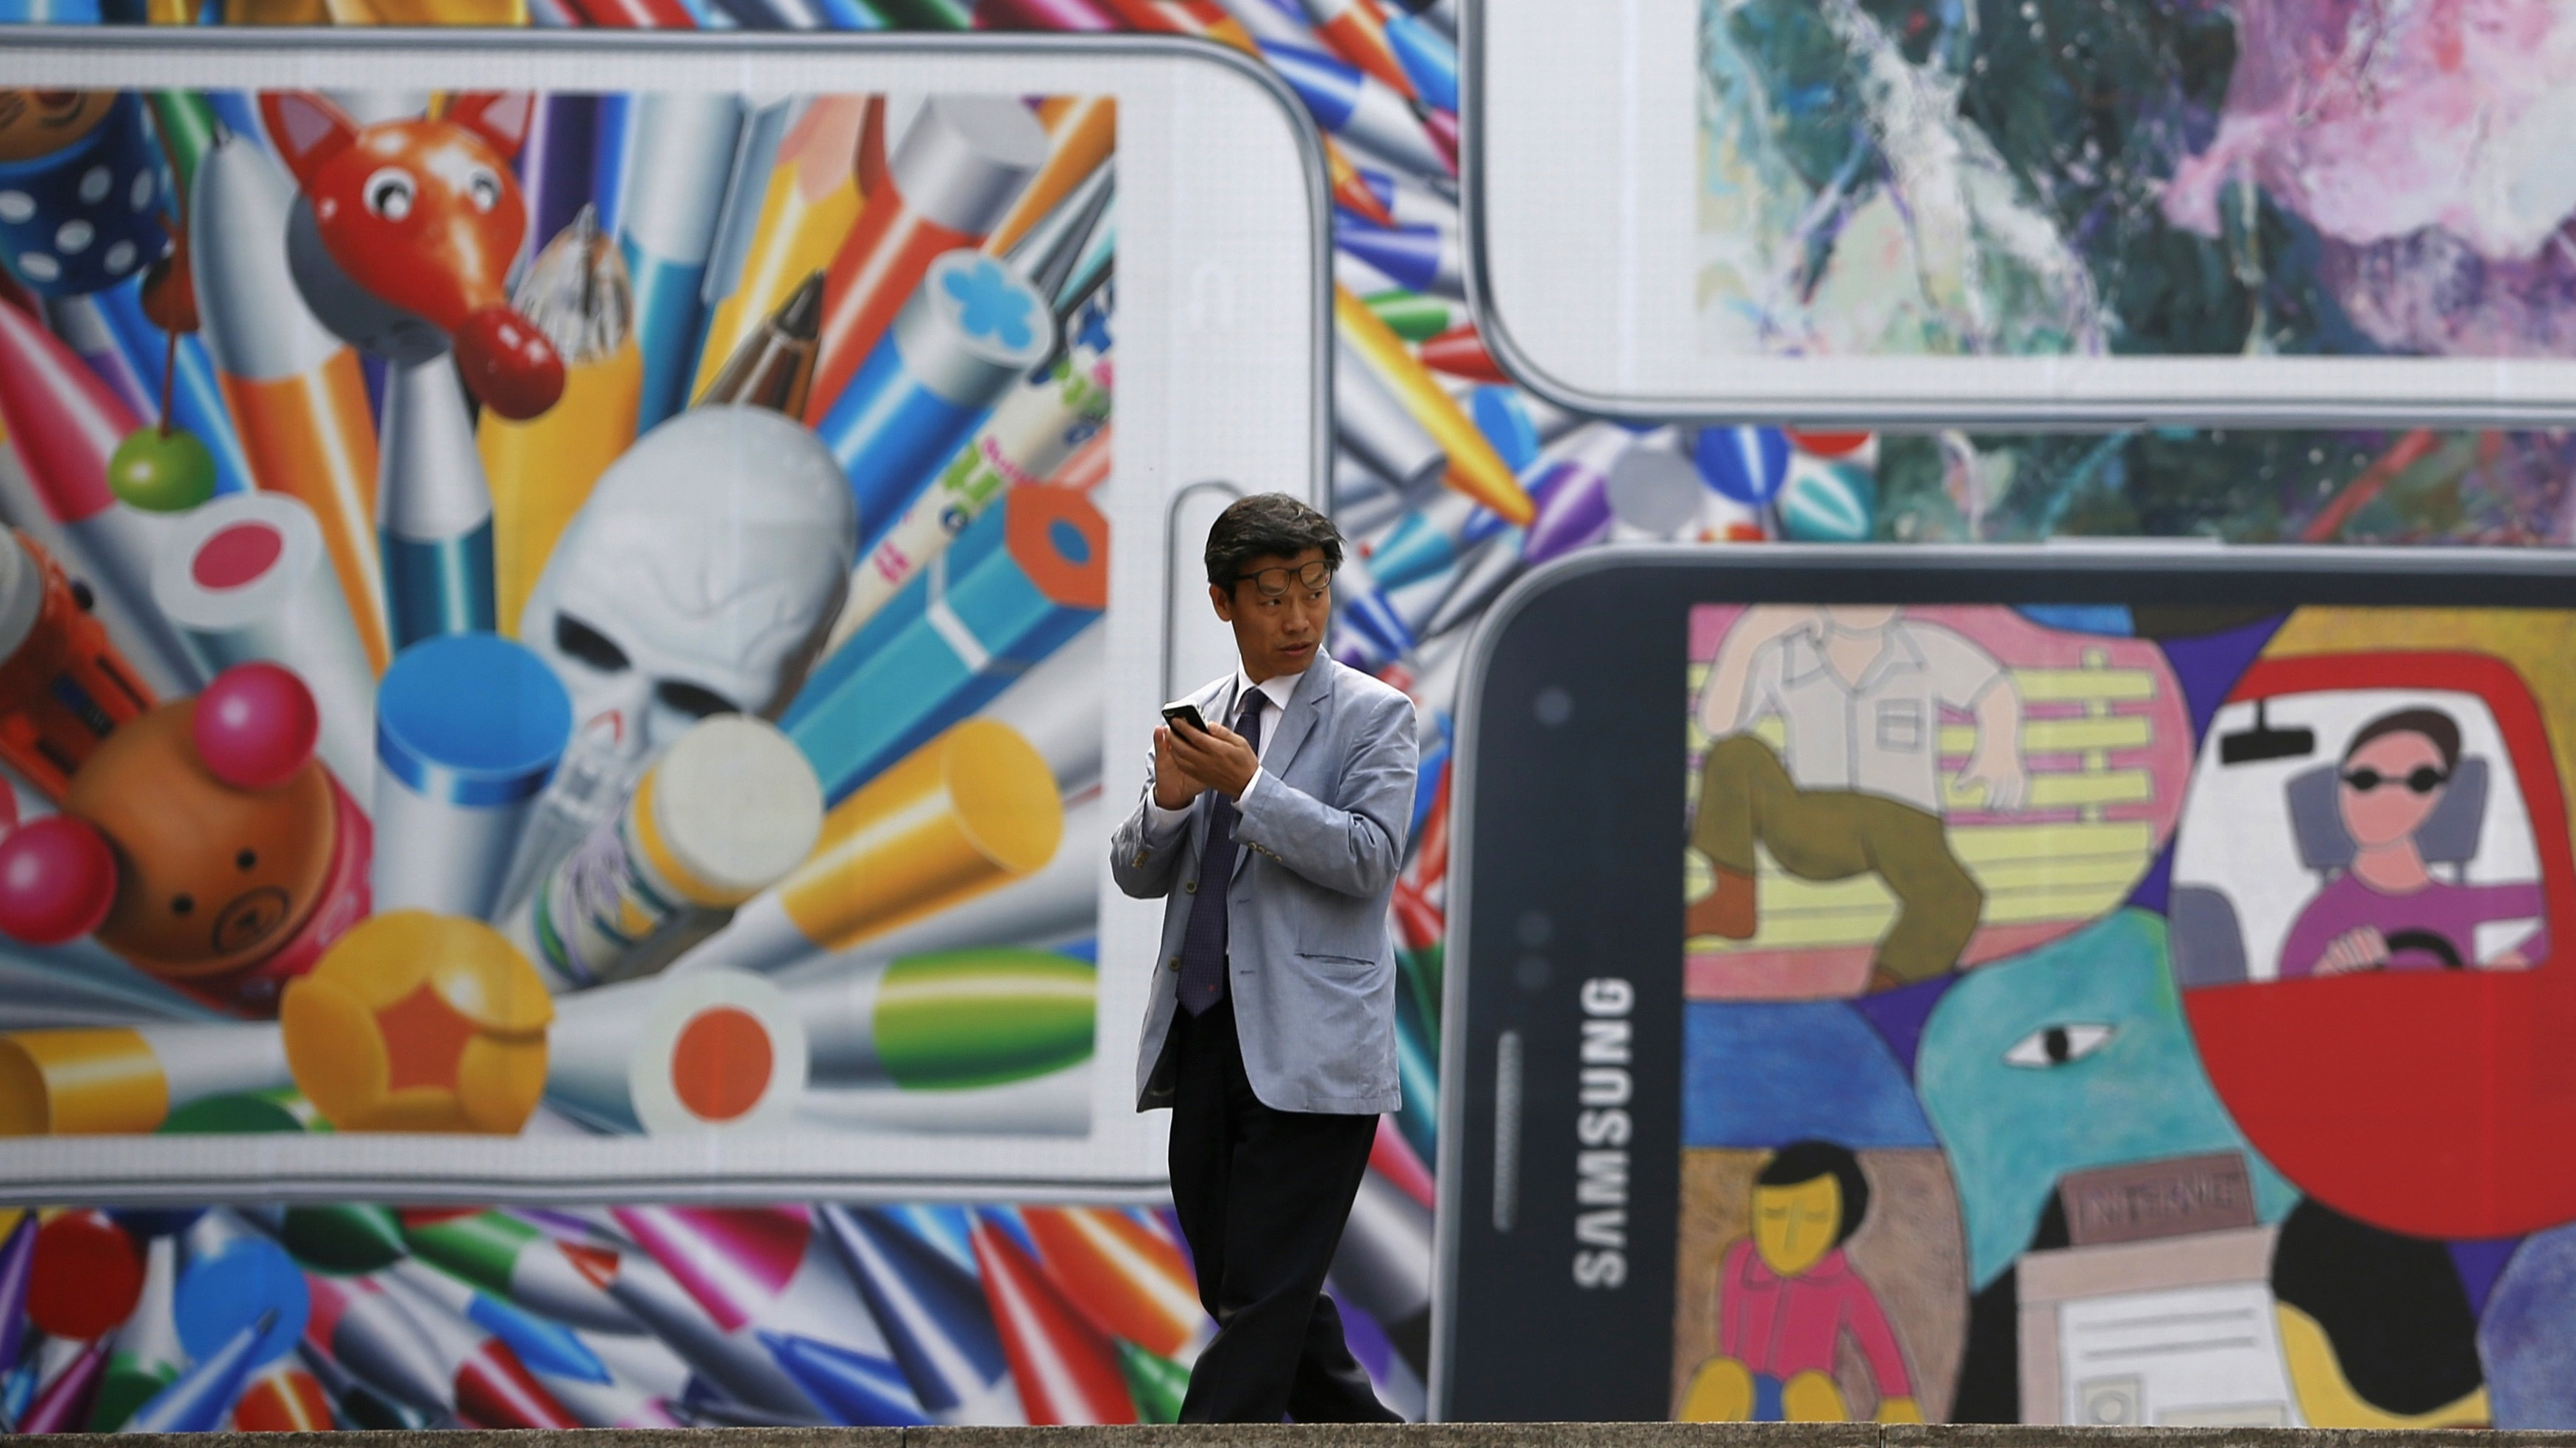 A man uses his mobile phone in front of a giant advertisement promoting Samsung Electronics' new Galaxy S5 smartphone, at an art hall in central Seoul April 15, 2014. Samsung Electronics Co Ltd's new Galaxy S5 smartphone should outsell its predecessor and defy predictions that the South Korean titan's latest model will struggle in a tough market for high-end handsets, Yoon Han-kil, senior vice president of Samsung's product strategy team, told Reuters in an interview. Picture taken on April 15, 2014. To match Interview SAMSUNG-ELEC-SALES/ REUTERS/Kim Hong-Ji